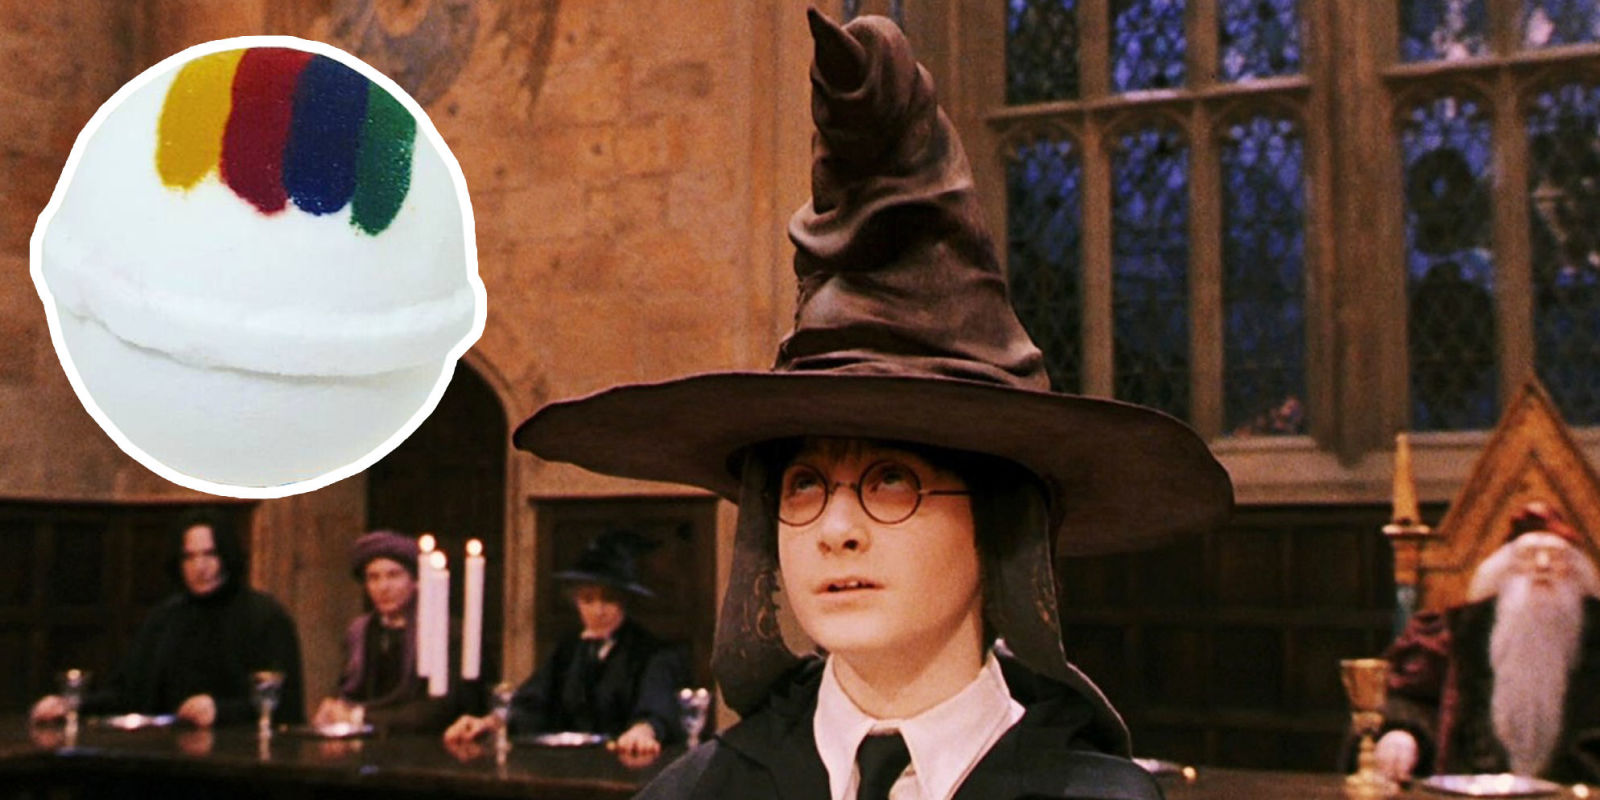 You can now wear the Sorting Hat from Harry Potter...kinda |Sorting Hat Scene